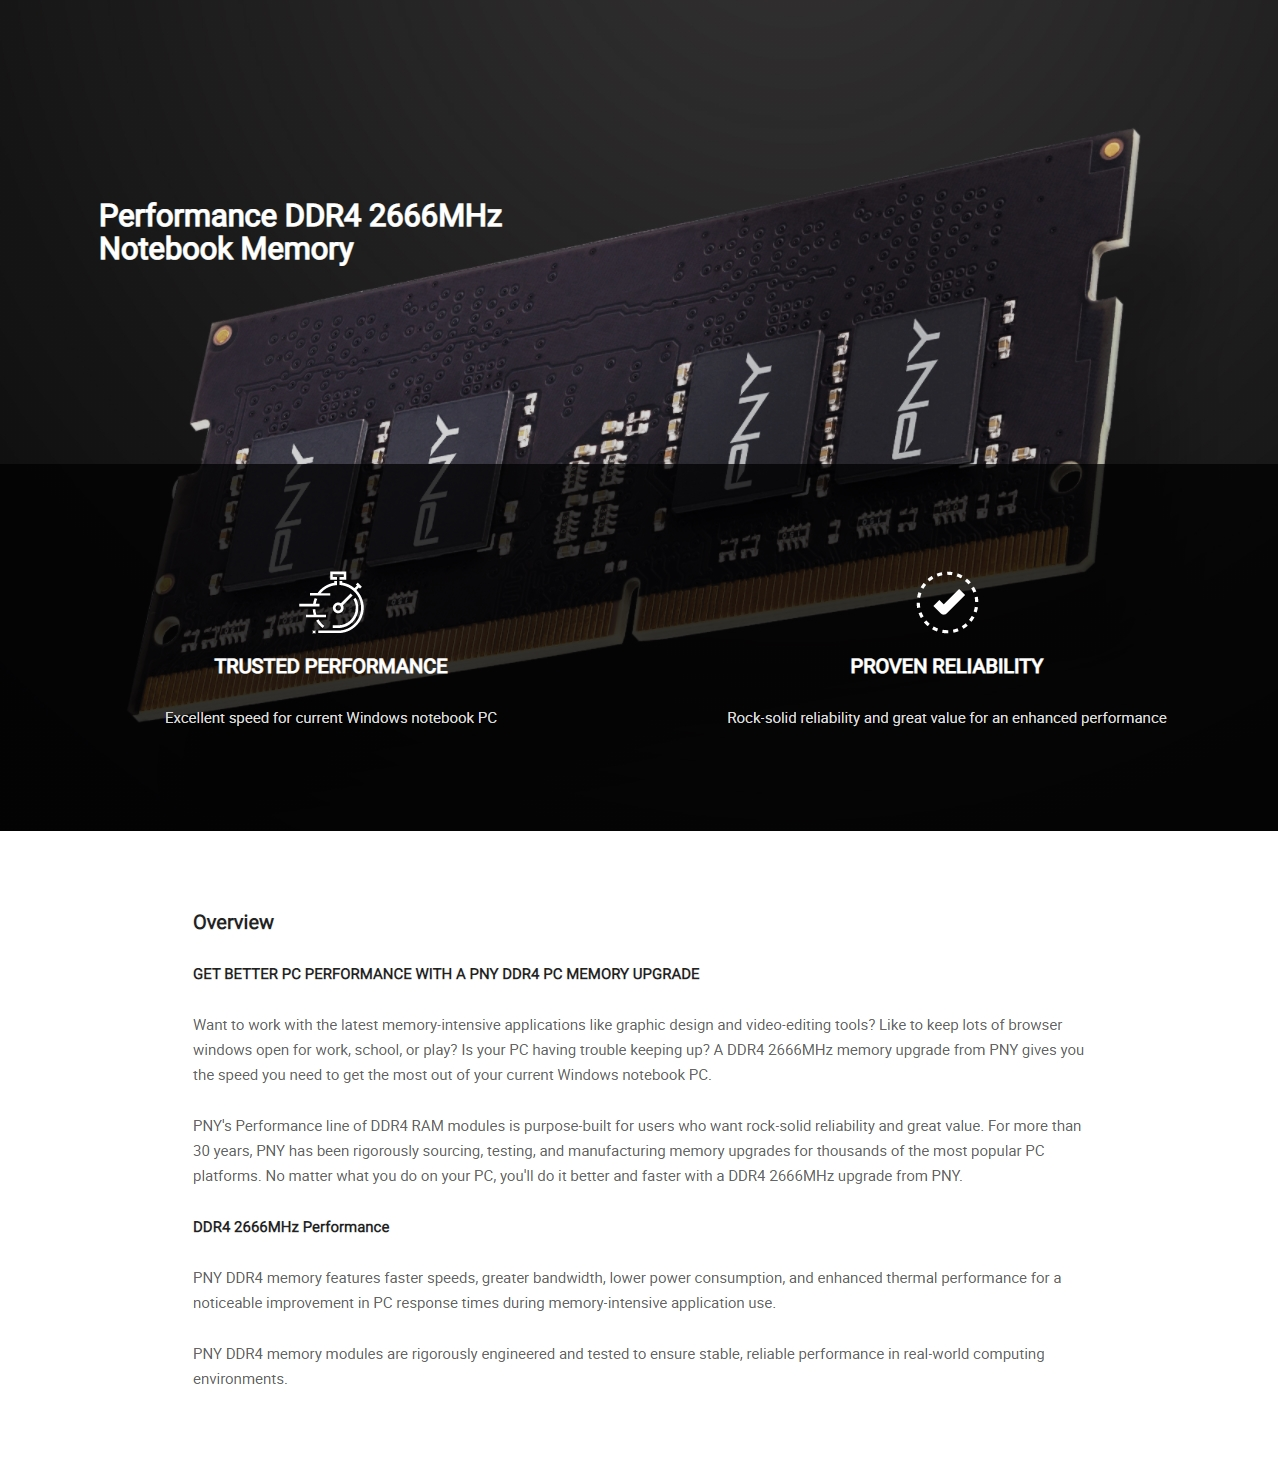 A large marketing image providing additional information about the product PNY Performance 4GB DDR4 C16 1.2v SO-DIMM 2666Mhz - Additional alt info not provided